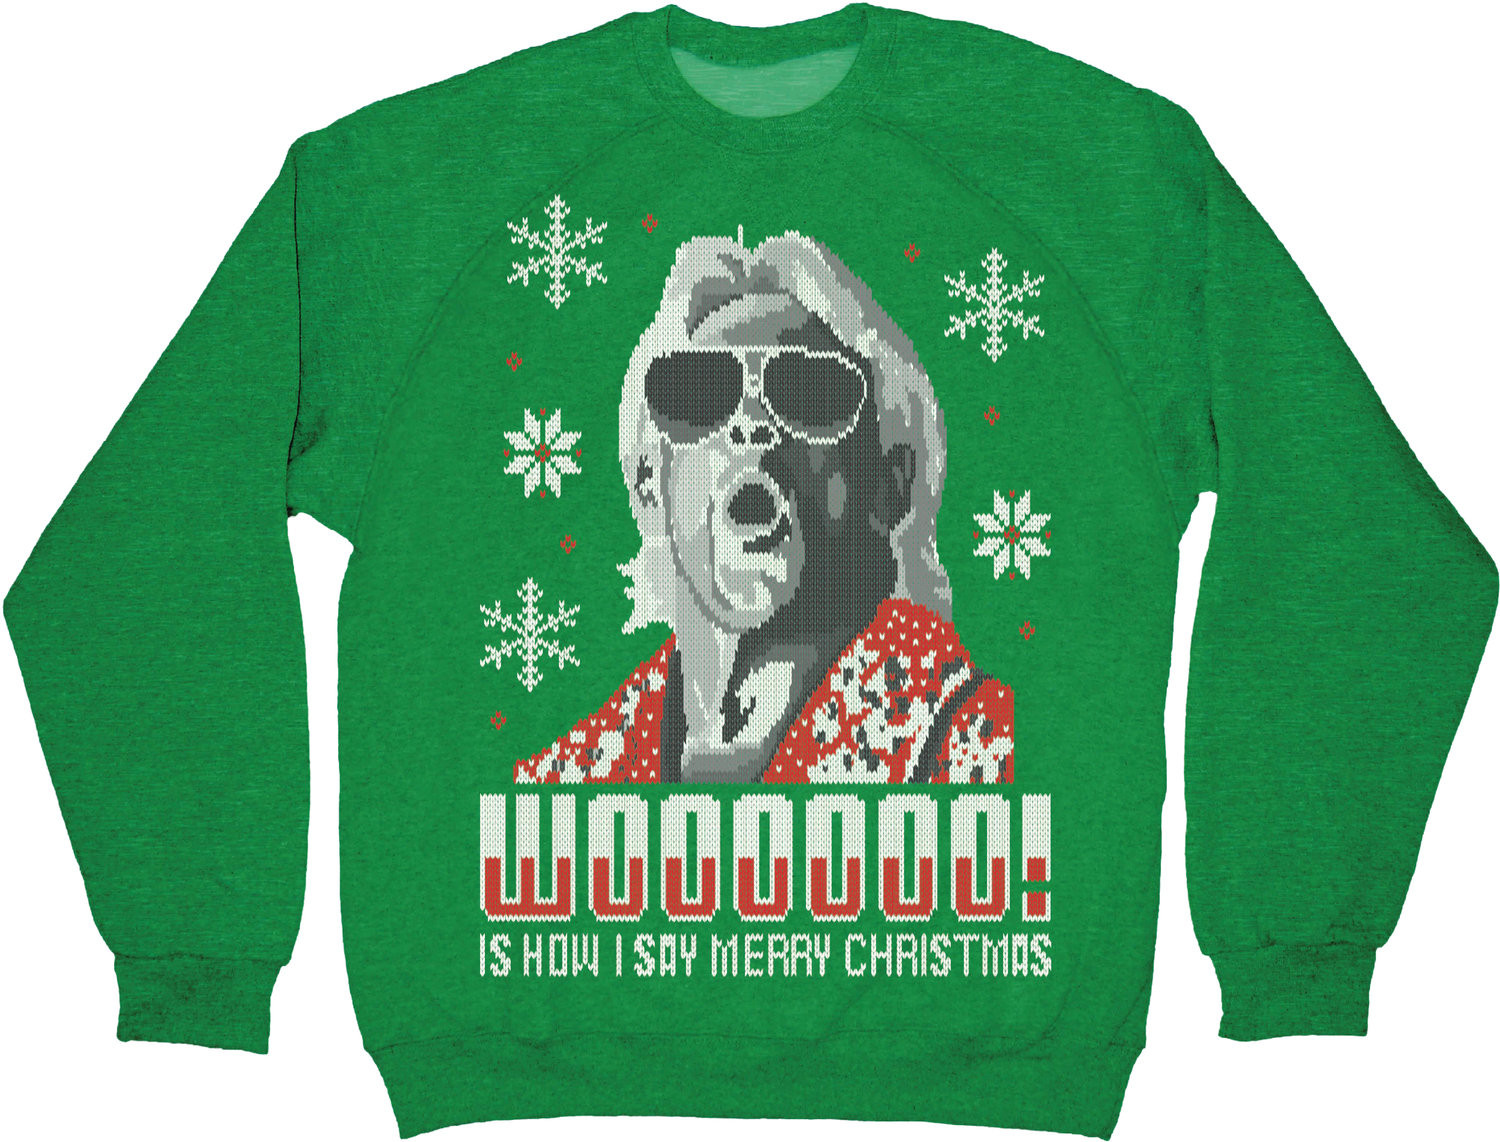 The Nerdy Gentlemen: Holiday Nerd: Ric Flair Christmas Sweater